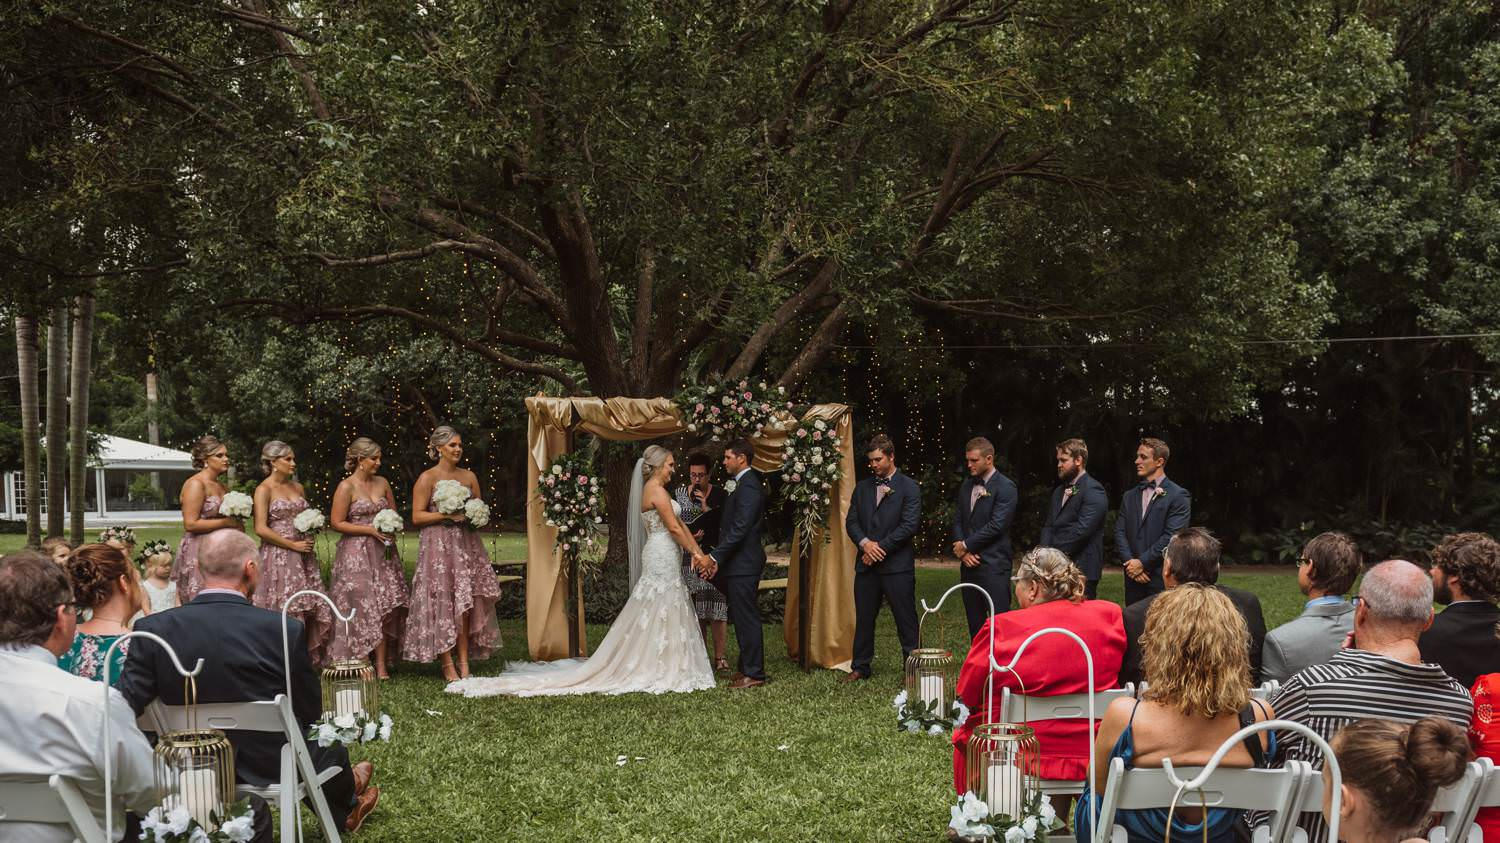 Wedding Ceremony at In the Grove